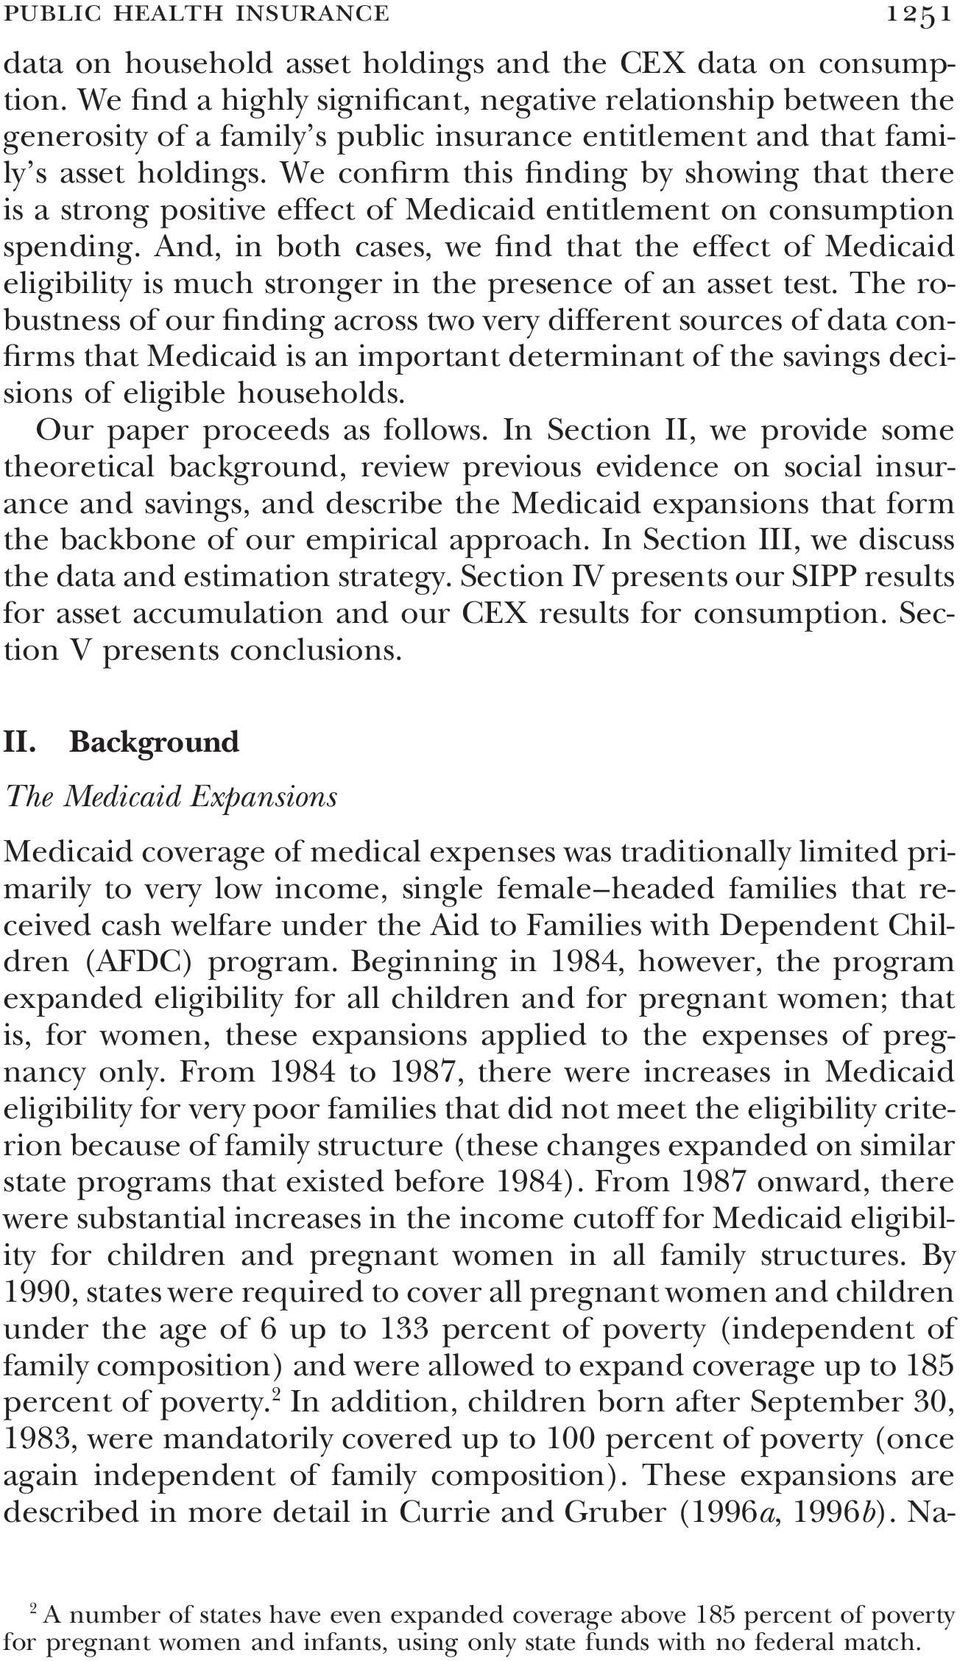 We confirm this finding by showing that there is a strong positive effect of Medicaid entitlement on consumption spending.